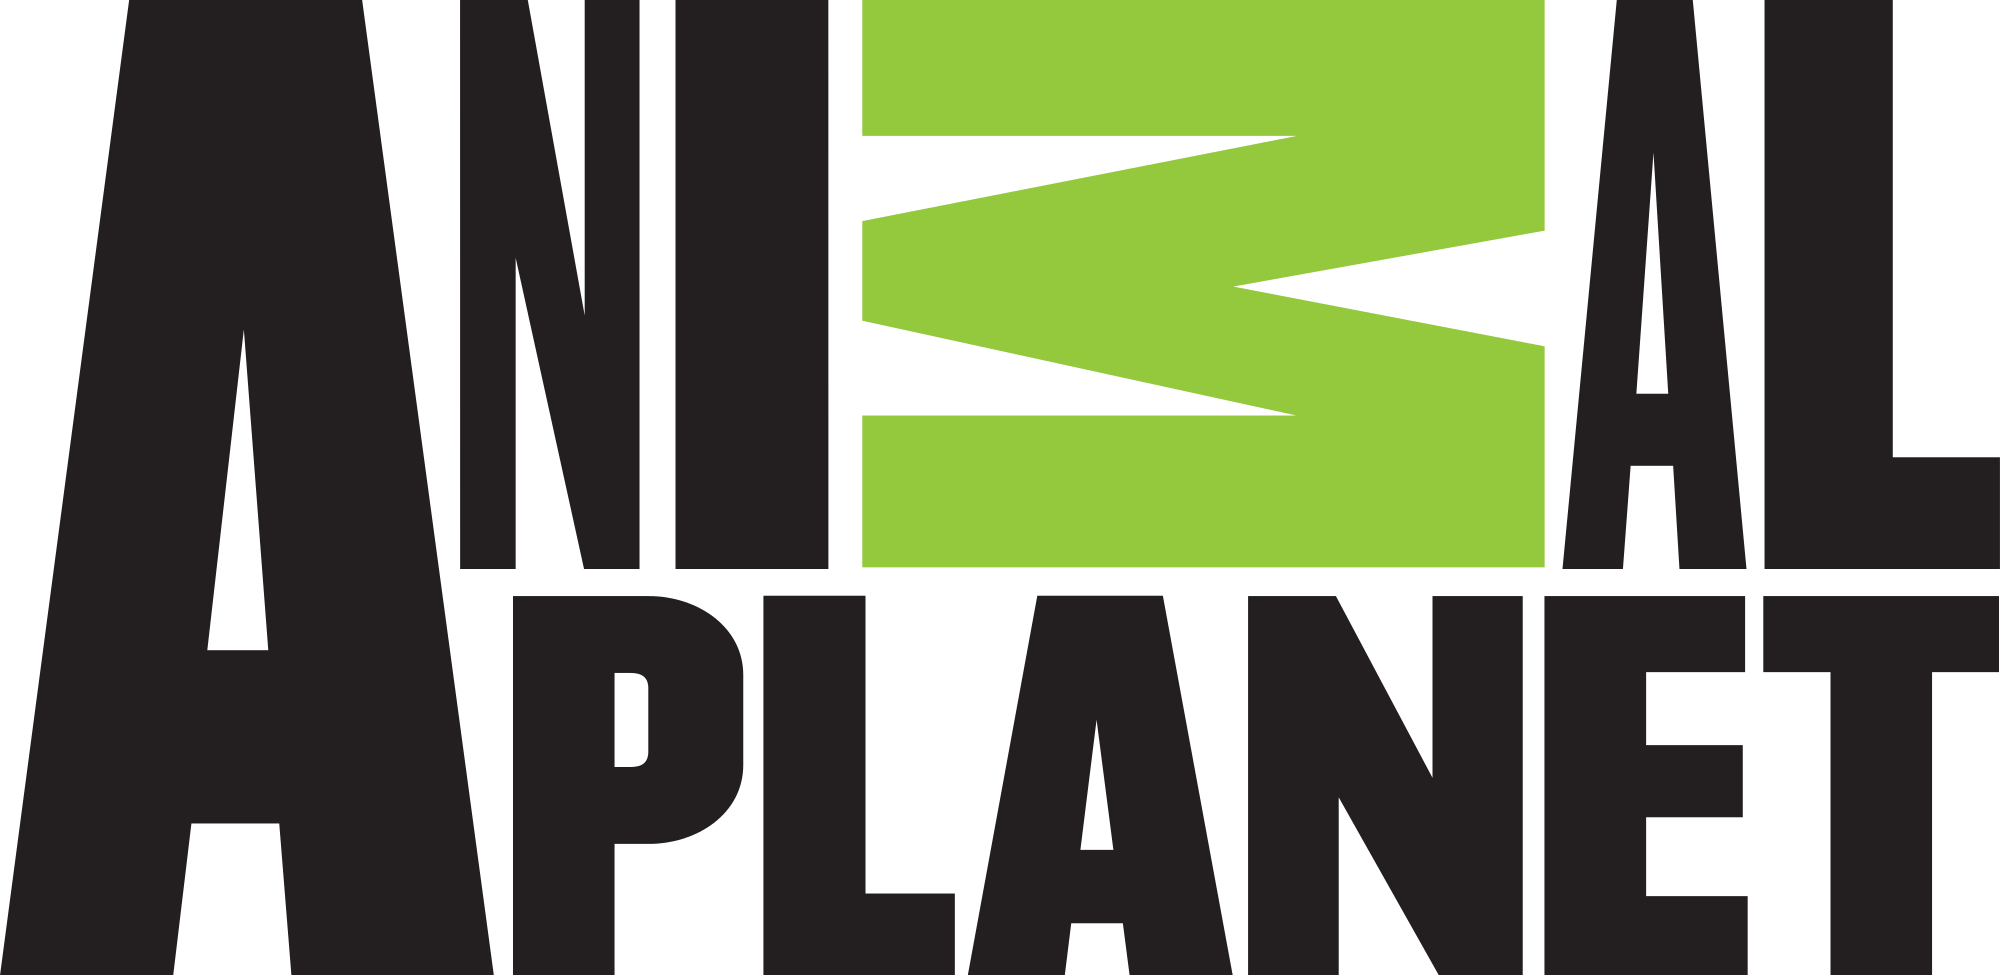 Animal planet logo png. File black and green